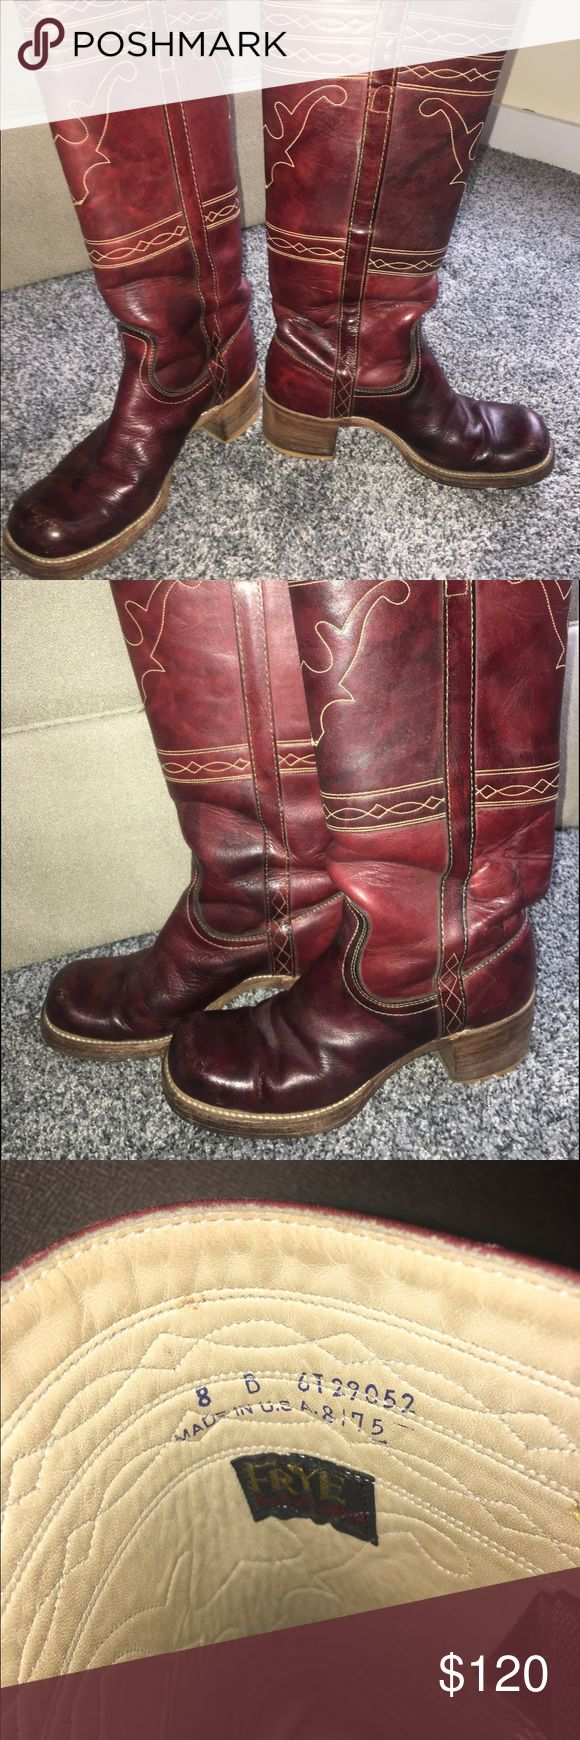 Leather Frye Riding Boots Gently used red Frye riding boots. These a beautiful but do not fit me. There are some scuff marks on the toes of both boots (from riding, of course!). Please send me any questions. :) Frye Shoes Heeled Boots